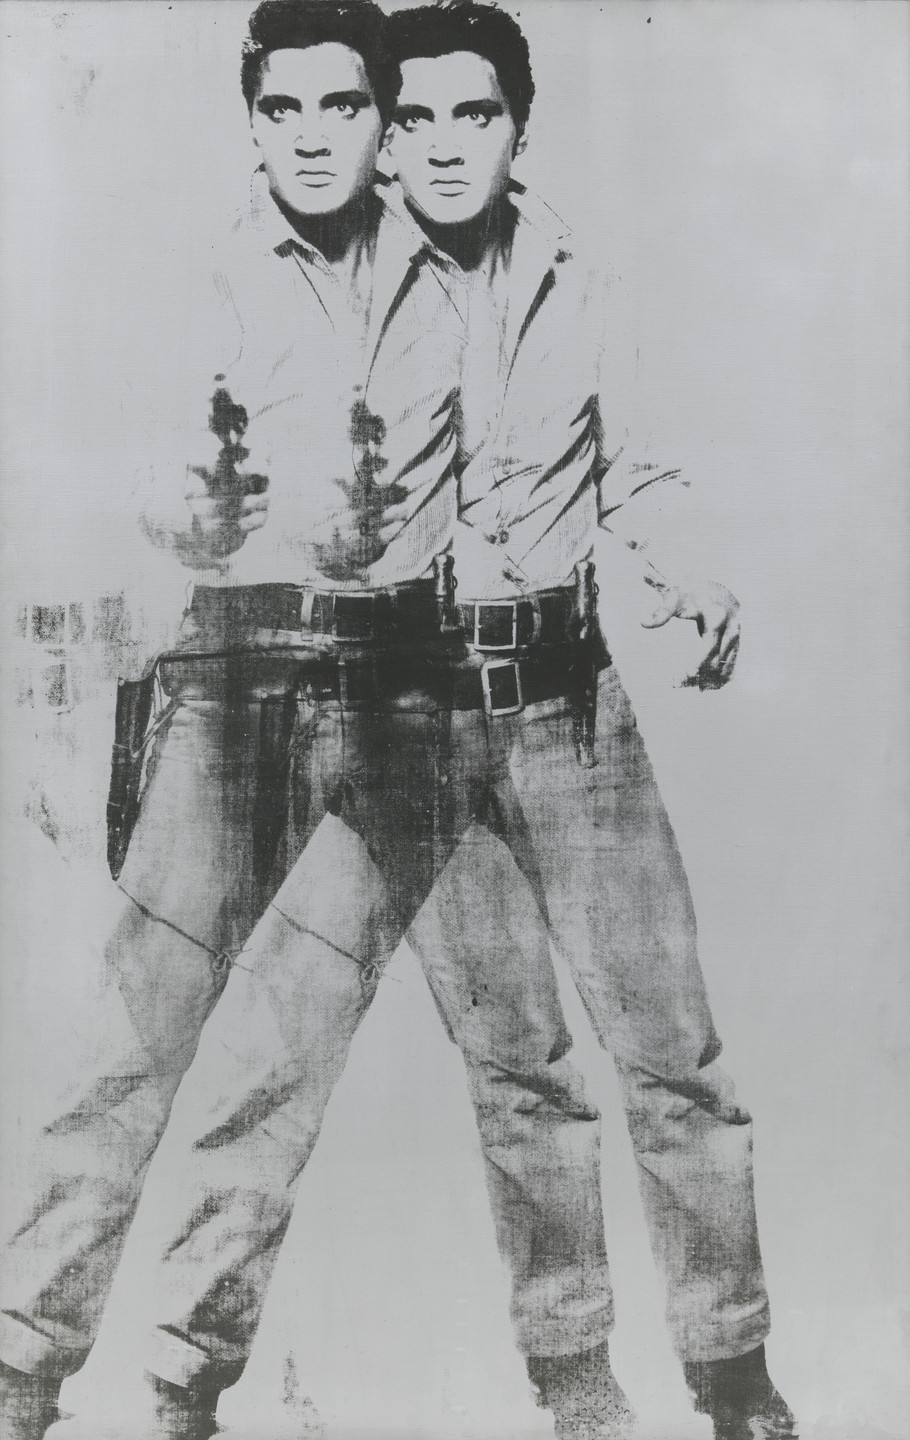 Andy Warhol. Double Elvis. 1963